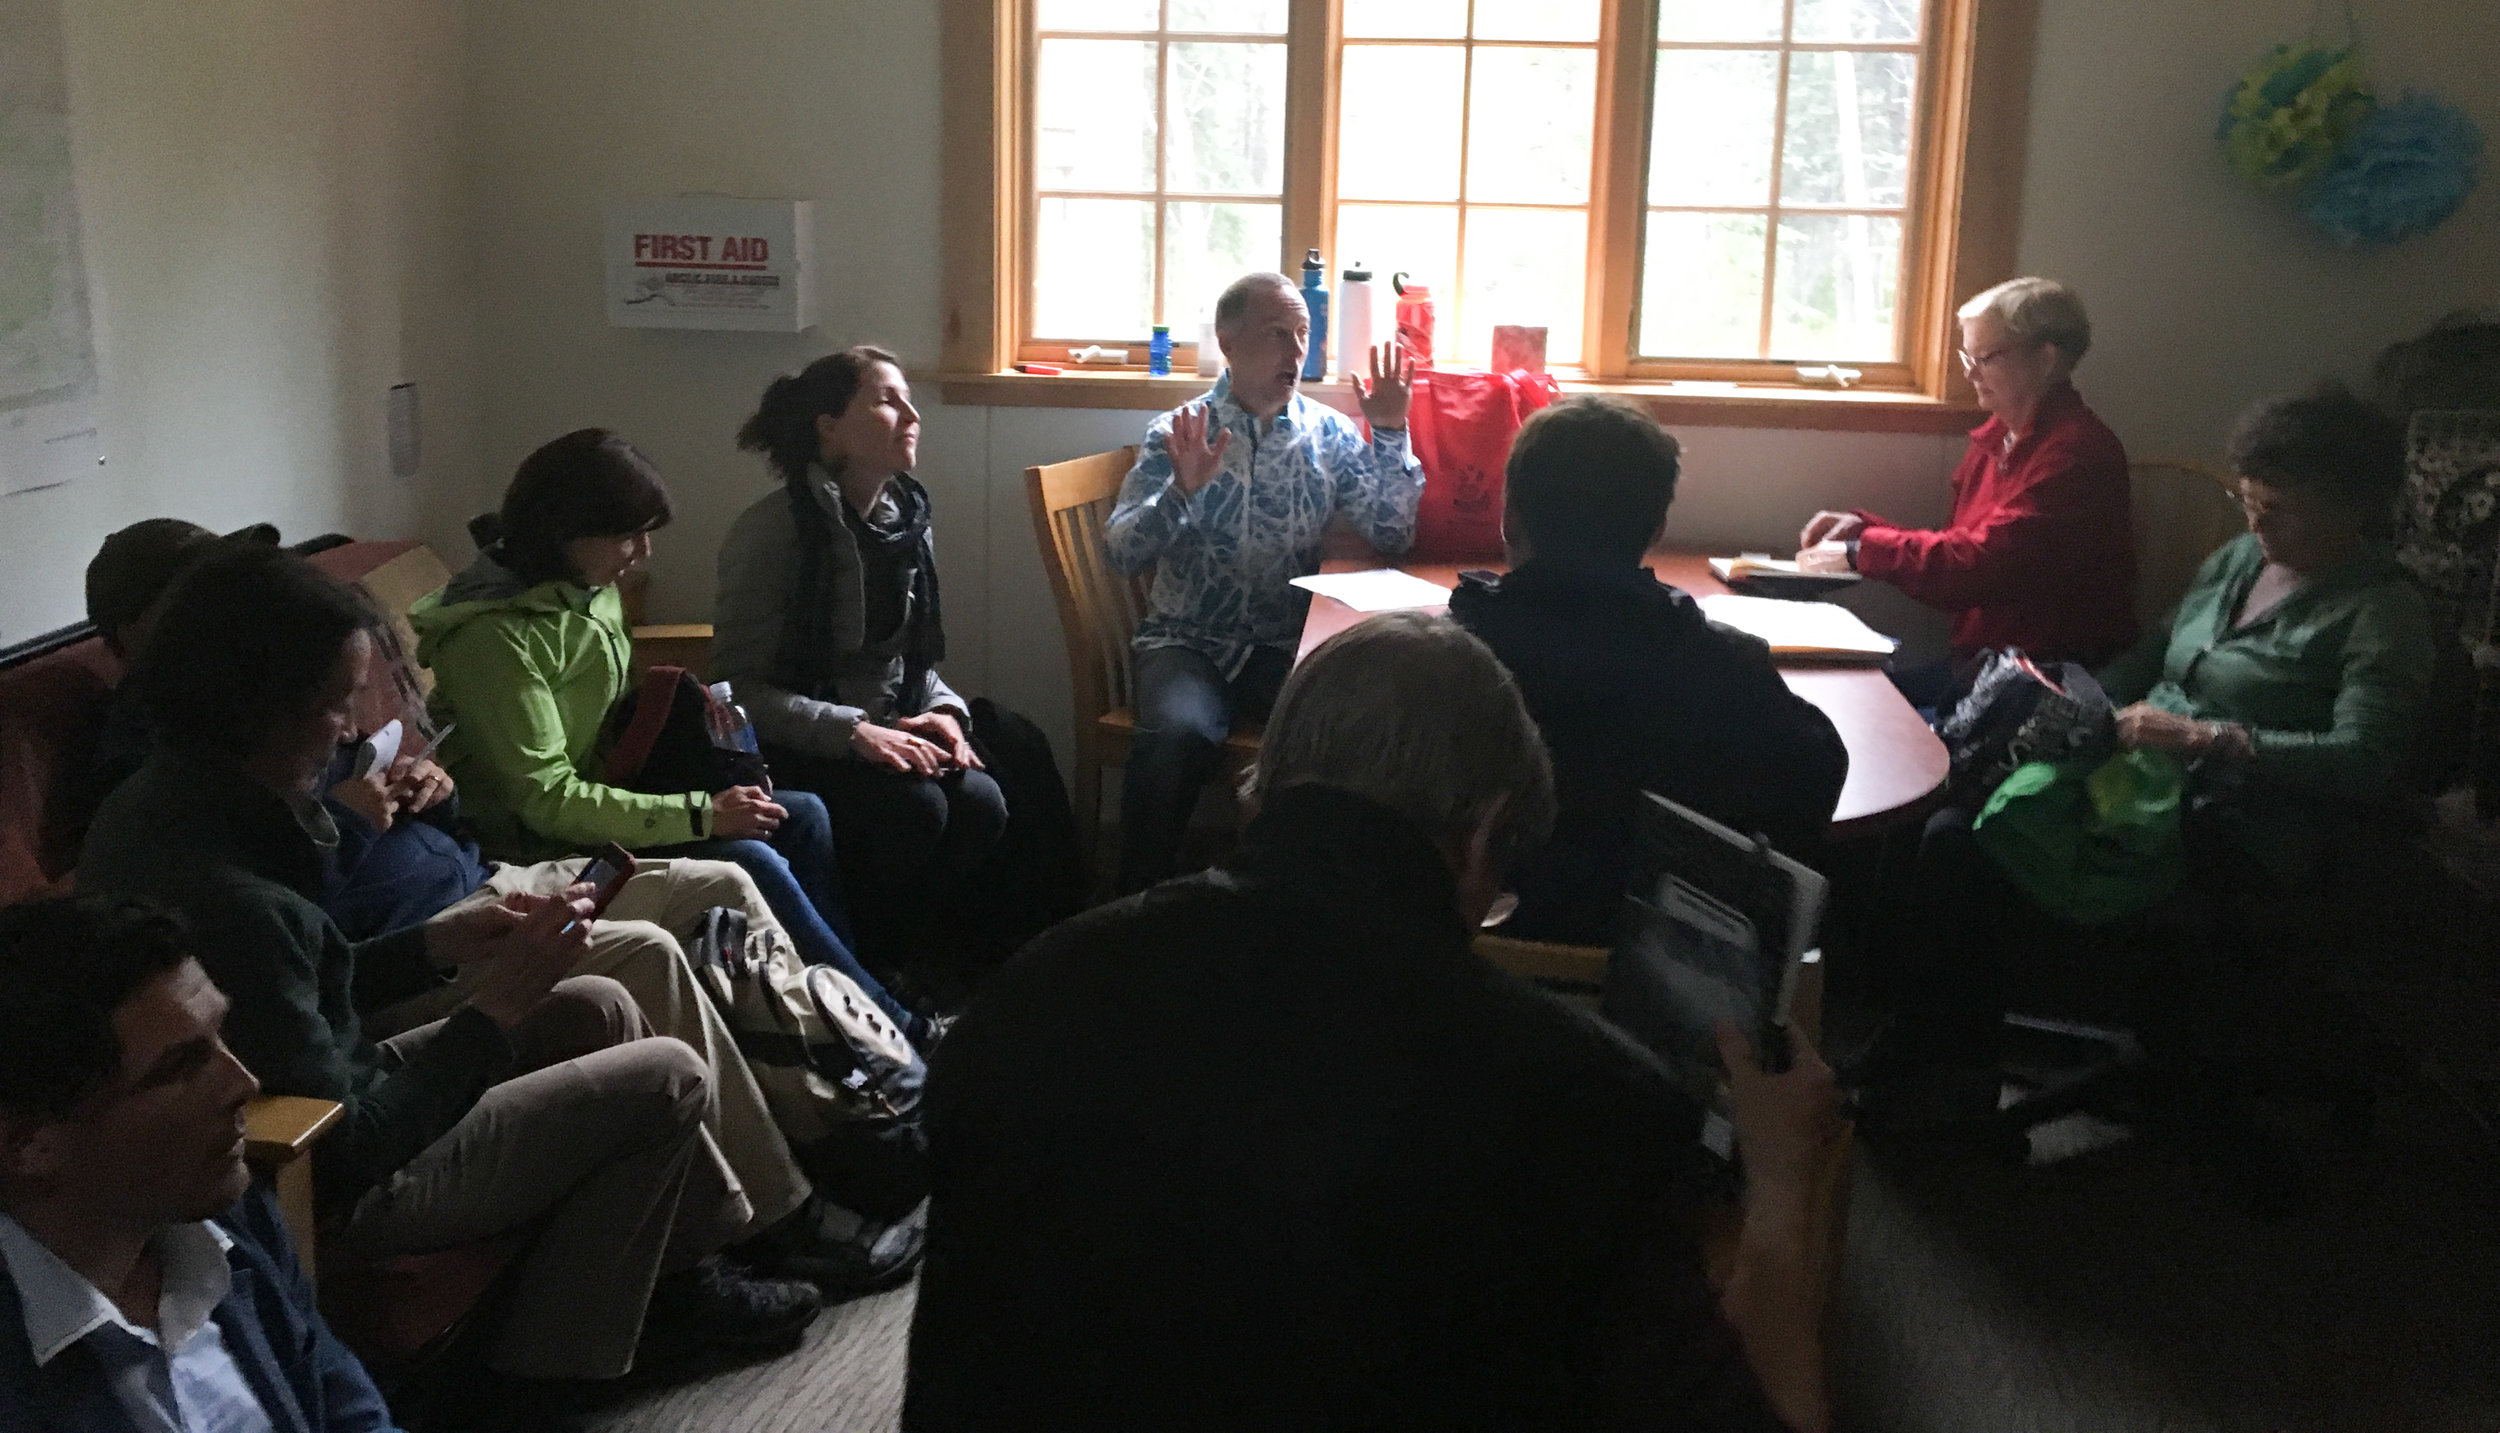 The composers and artist meet for the first time in a back room at the Denali Visitors Center.